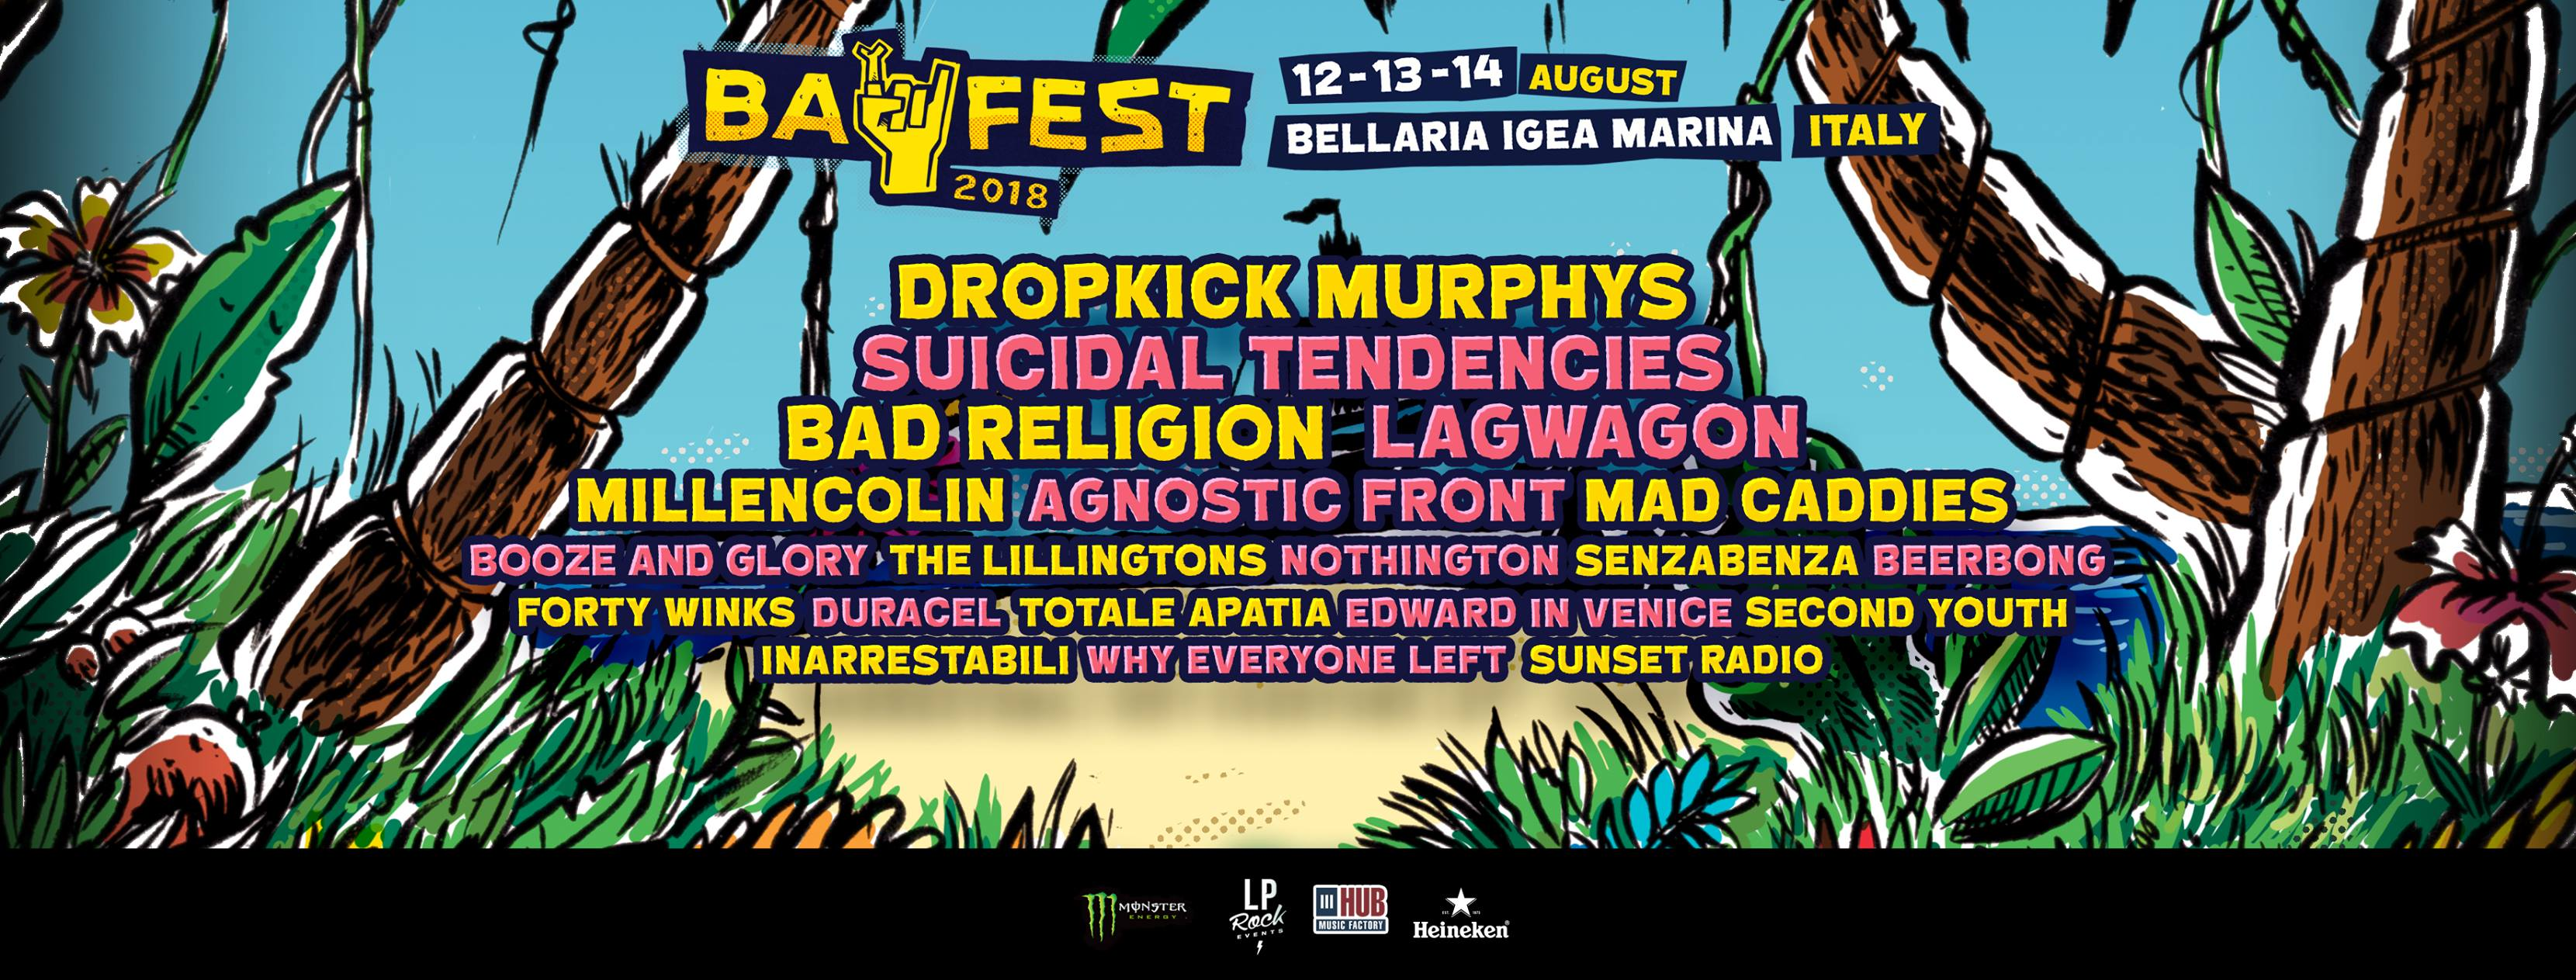 Bay Fest 2018 preview, Bay Fest 2018, Bay Fest 2018 lineup, Bay Fest 2018 bands, bayfestsummer, bayfest18, Bay Fest Bellaria Igea Marina 12 13 14 Agosto 2018, LP Rock Events, Andrea Cantelli, sickandsound, hardcore, hardcore punk, punk rock, Dropkick Murphys, Agnostic Front, Suicidal Tendencies, Bad Religion, Millencolin, Lagwagon, Mad Caddies, The Lillingtons, Beerpong, Forty Winks, Duracel, Why Everyone Left, The Flatliners, Second Youth, Inarrestabili, Totale Apatia, Senzabenza, Edward In Venice, Sunset Radio, Bay Fest Parco Pavese Beky Bay Bellaria Igea Marina, Baycamp, Upcoming events August 2018, Upcoming festivals August 2018, punk rock festival, punk rock festivals 2018, hardcore festival, hardcore festivals 2018, punk rock festivals Italy, Upcoming events August 2018, UPCOMING ROCK AND METAL EVENTS AROUND THE WORLD August 2018, bayfest18, bayfestsummer, Bay Fest Parco Pavese